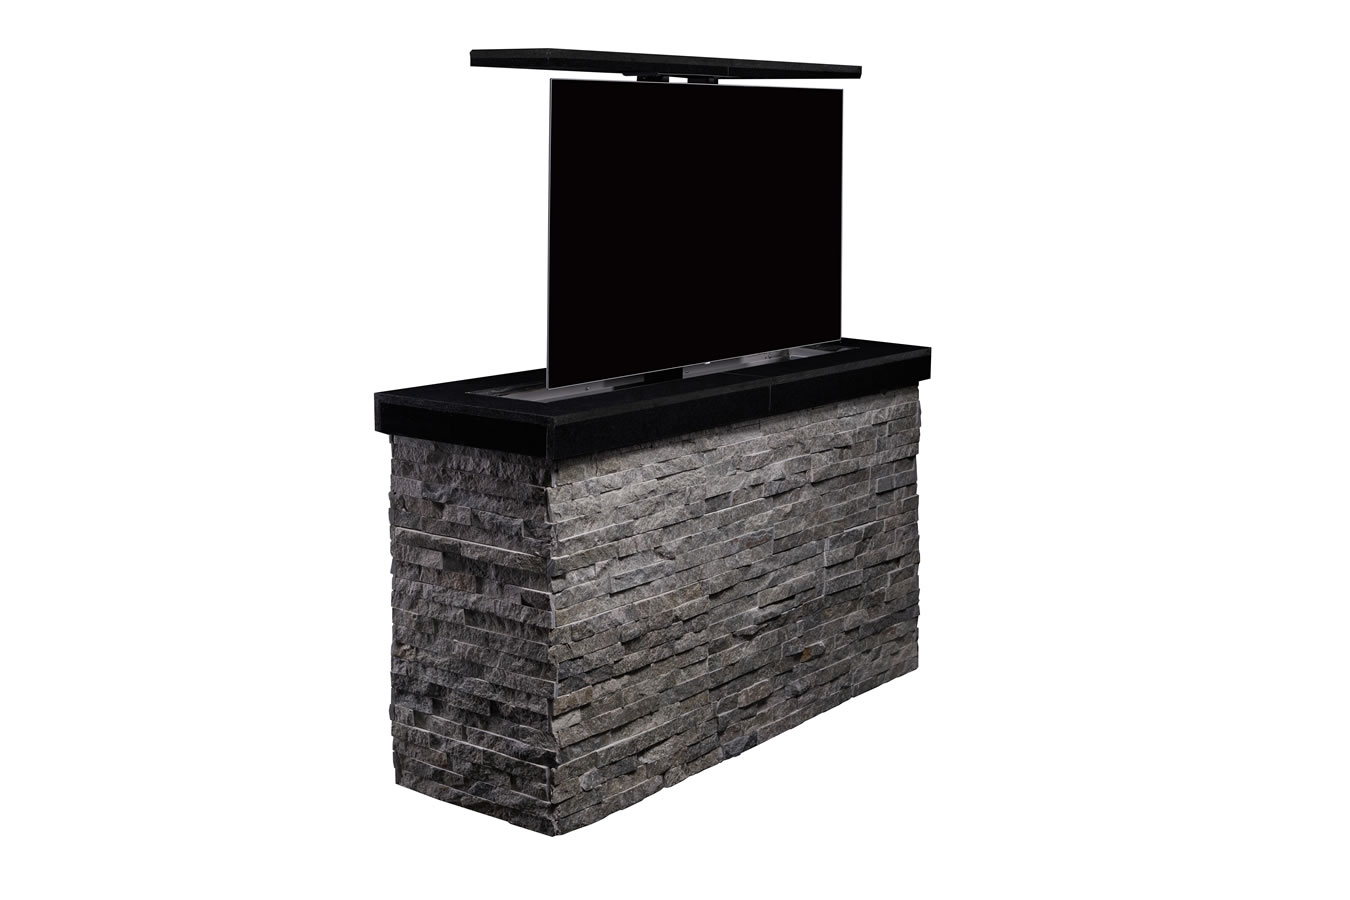 Cabinet Tronix Outdoor Hidden Tv Lift Furniture Island Protects 55 Inch And Hides It Away